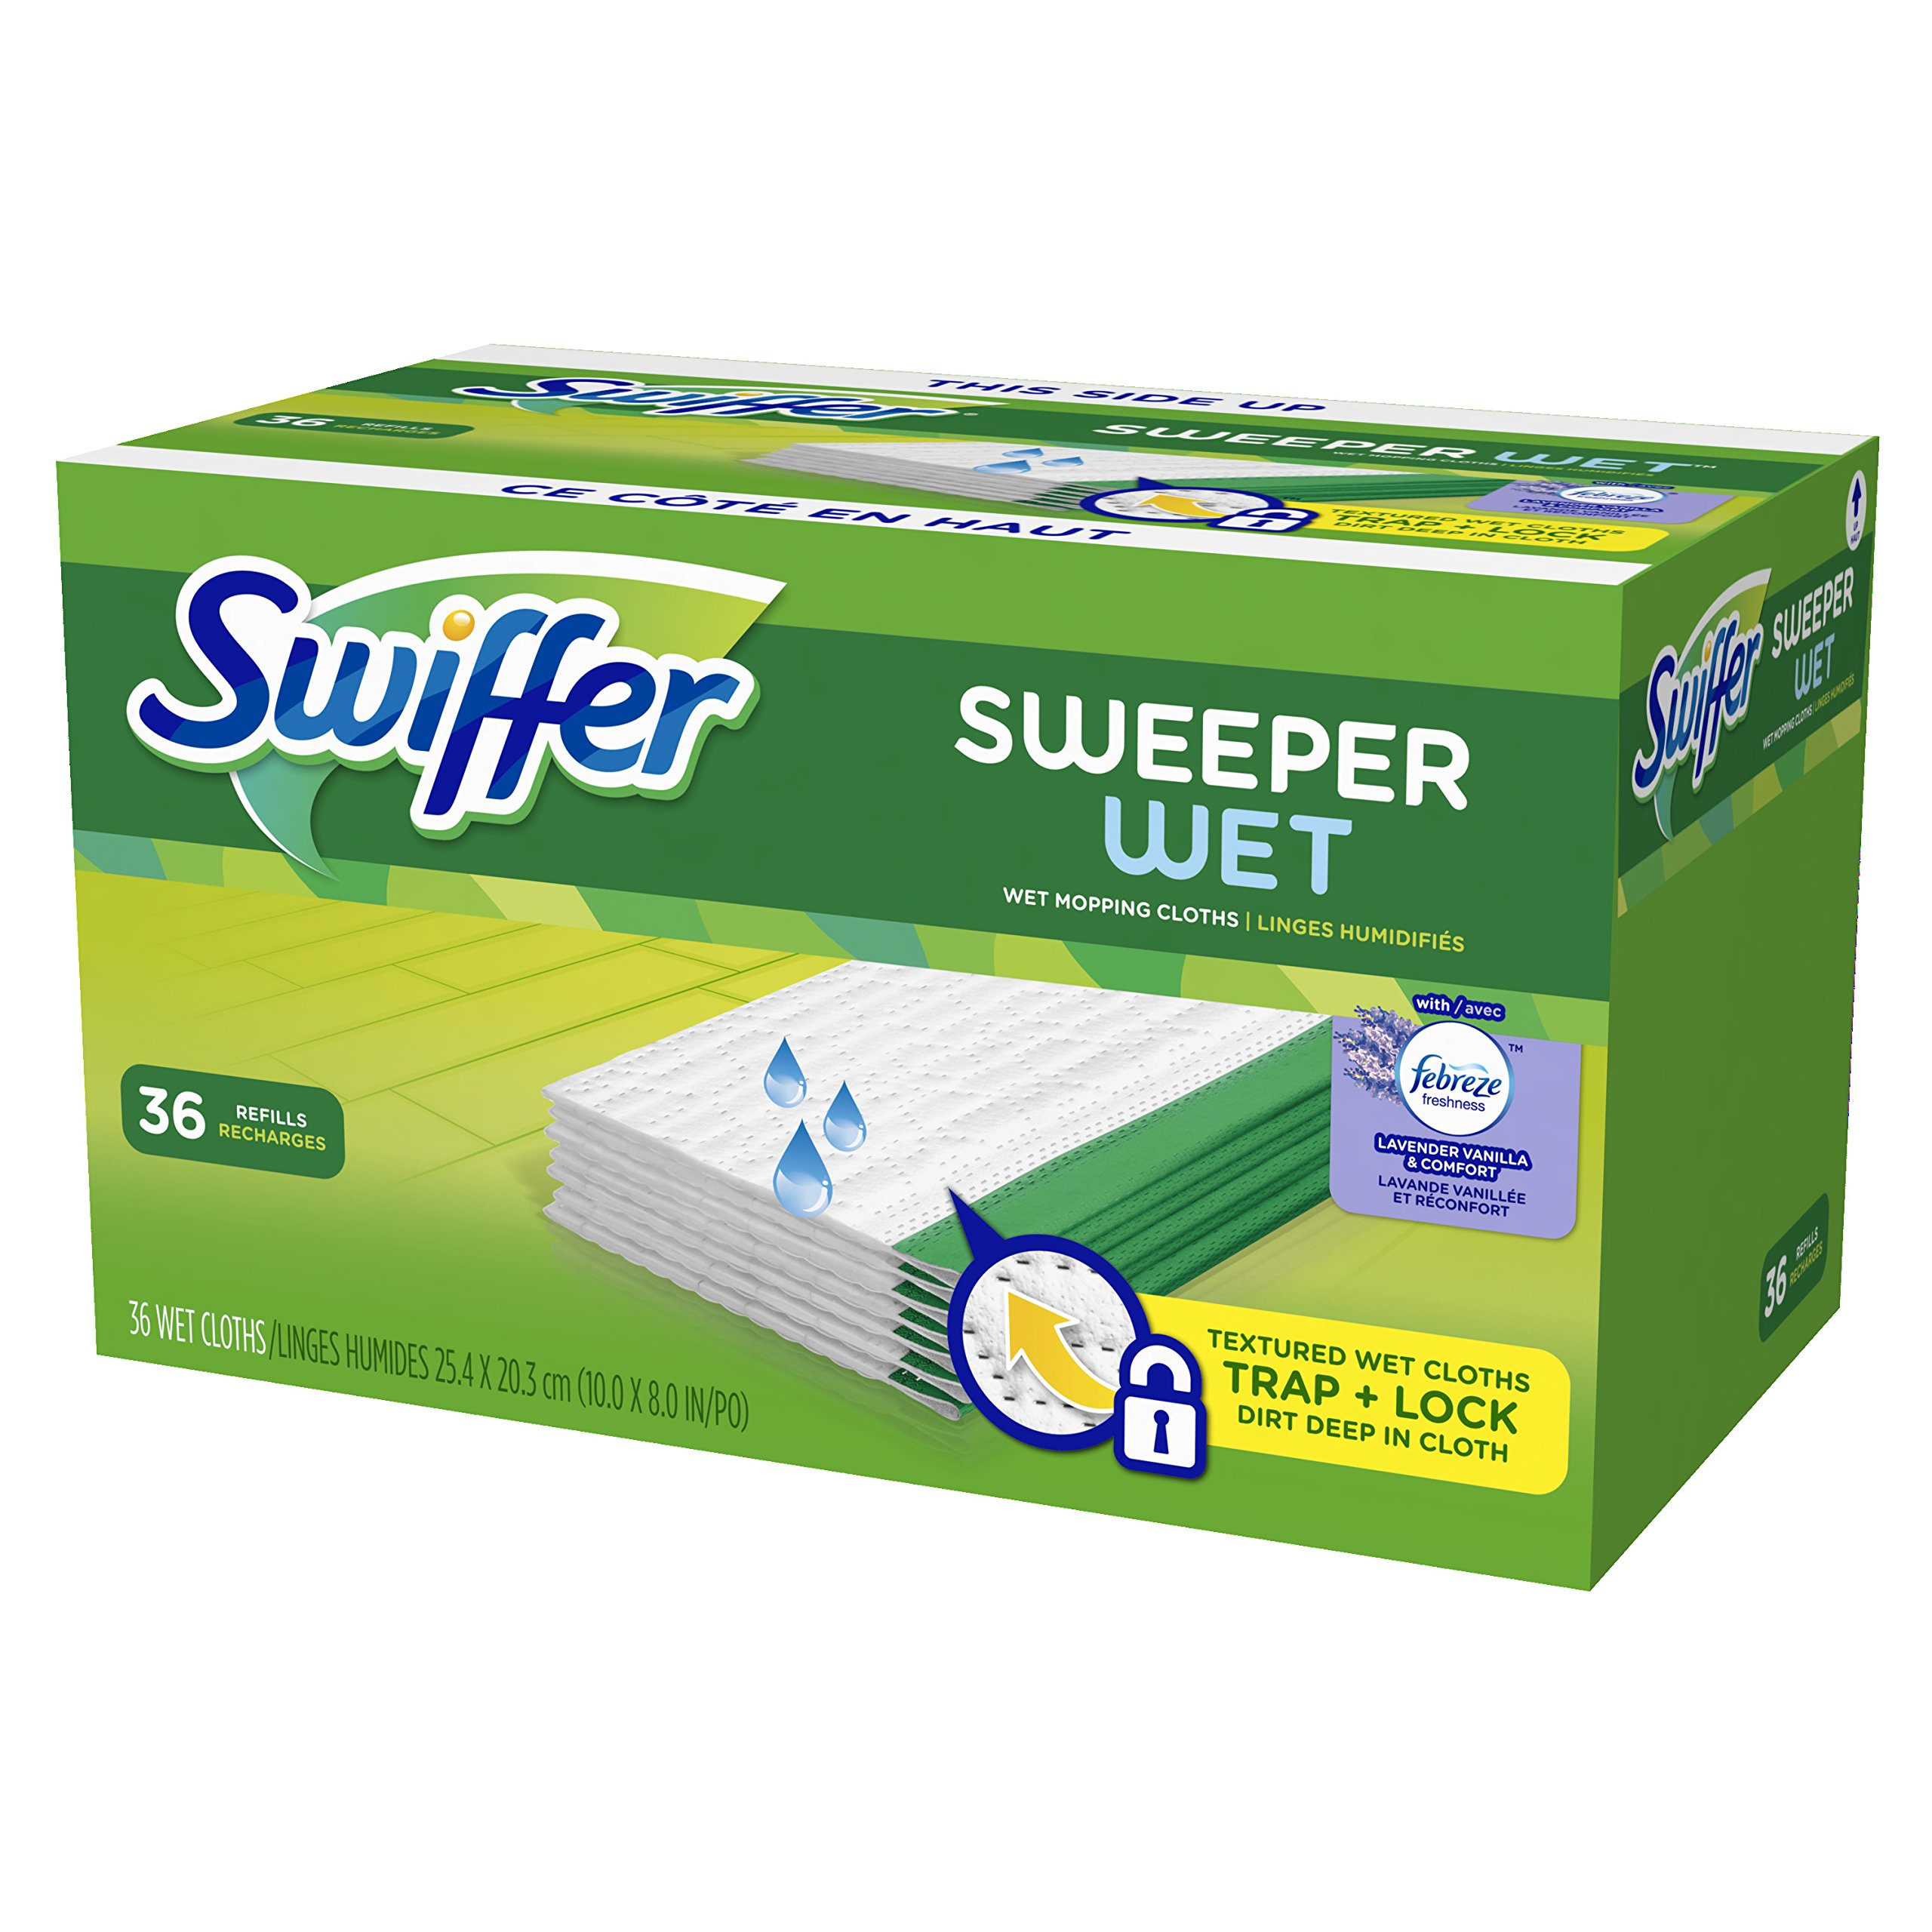 Swiffer Sweeper Wet Mop Refills for Floor Mopping and Cleaning, All Purpose Floor Cleaning Product, Lavender Vanilla and Comfort Scent, 36 Count by Swiffer (Image #8)